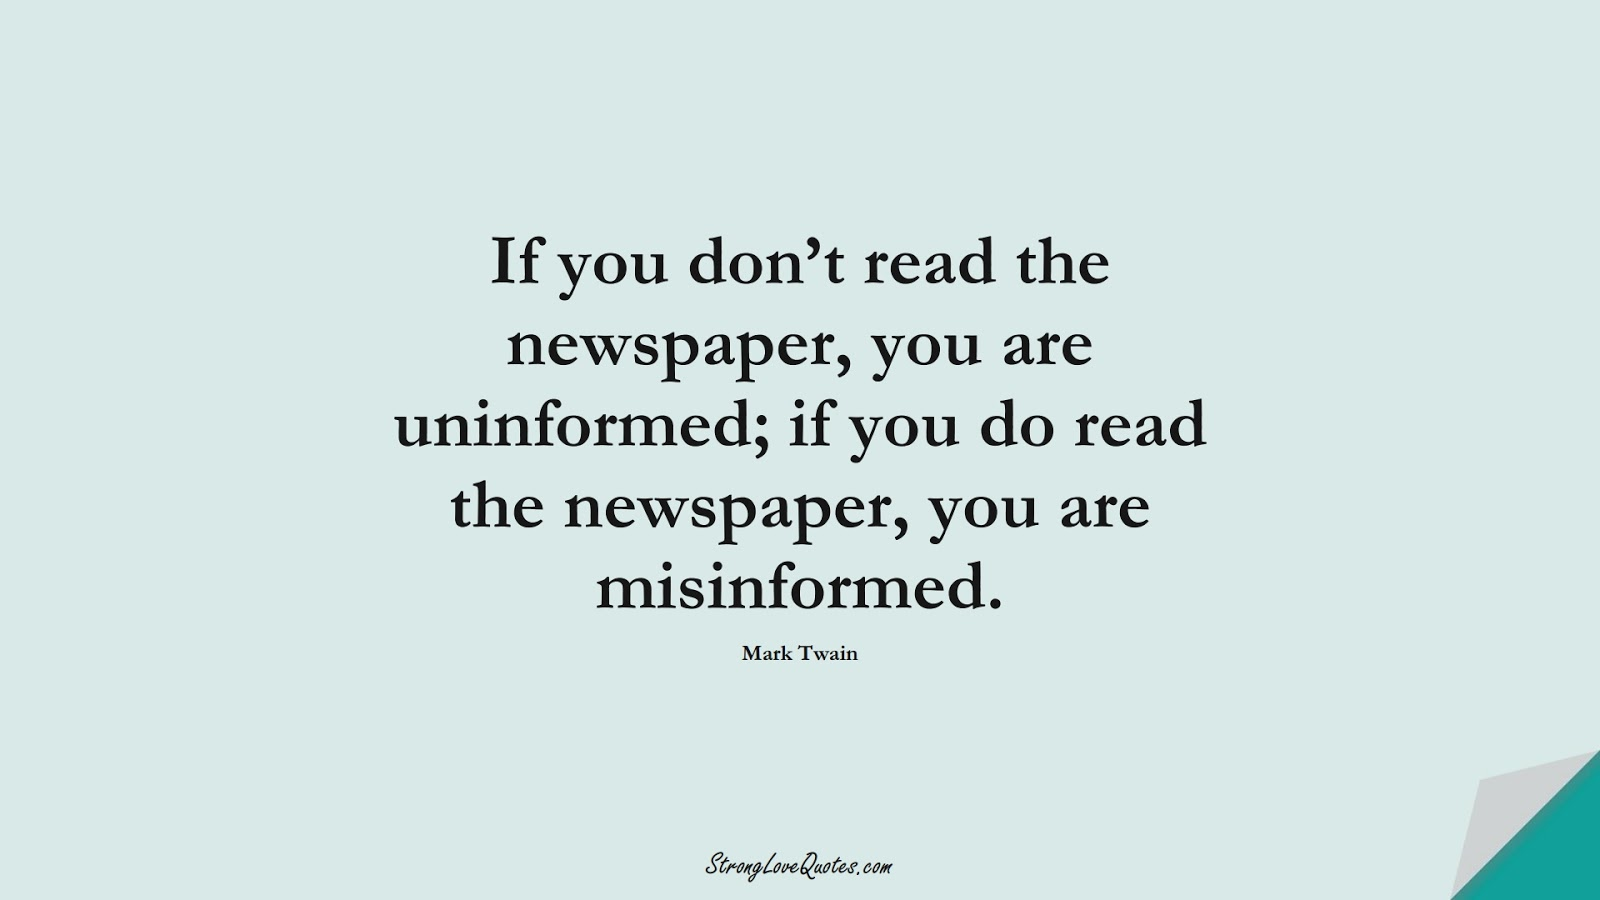 If you don't read the newspaper, you are uninformed; if you do read the newspaper, you are misinformed. (Mark Twain);  #KnowledgeQuotes